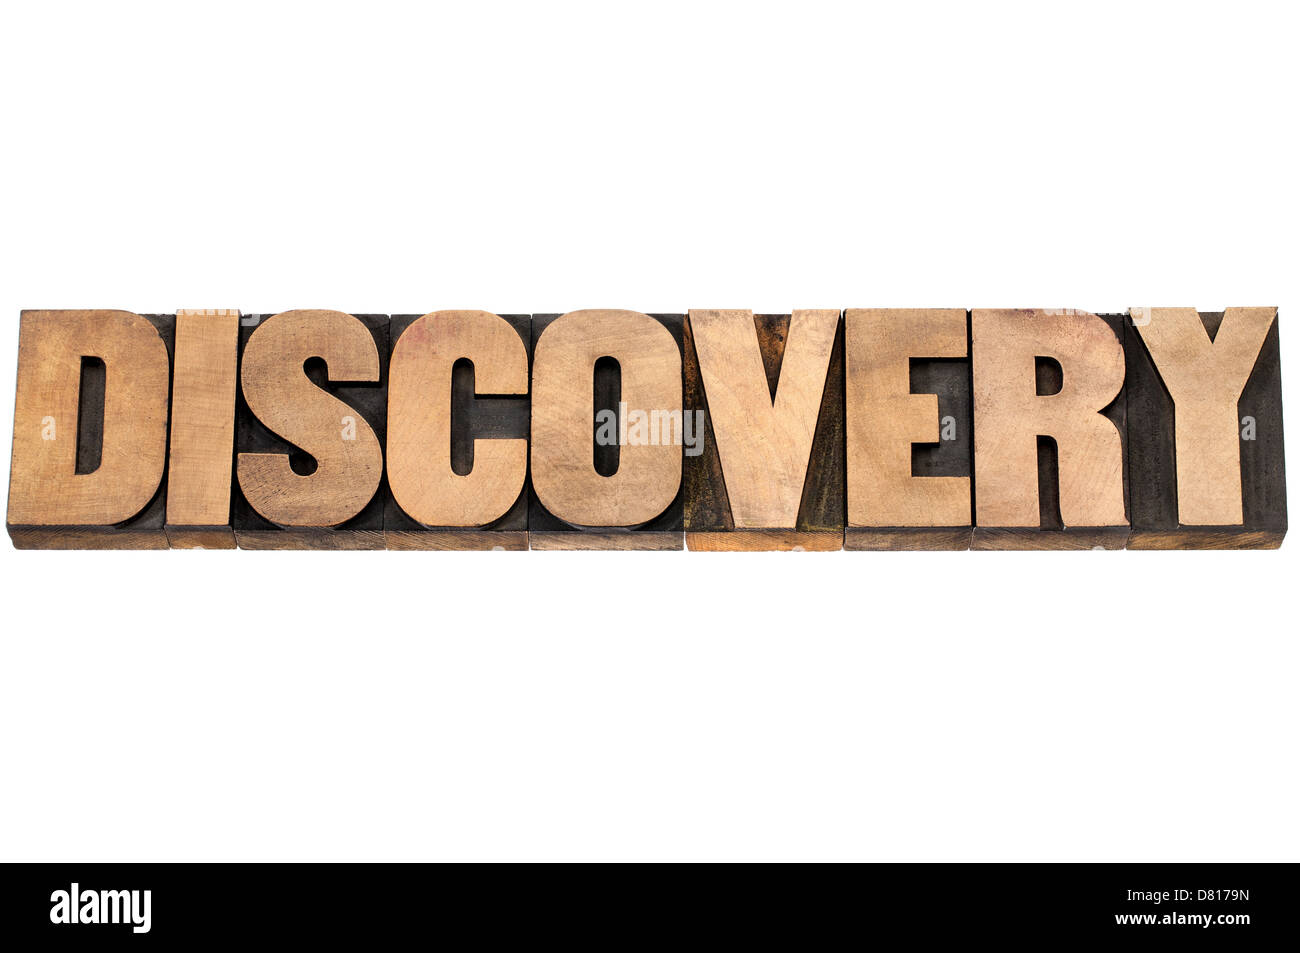 discovery word - isolated text in letterpress wood type printing blocks - Stock Image